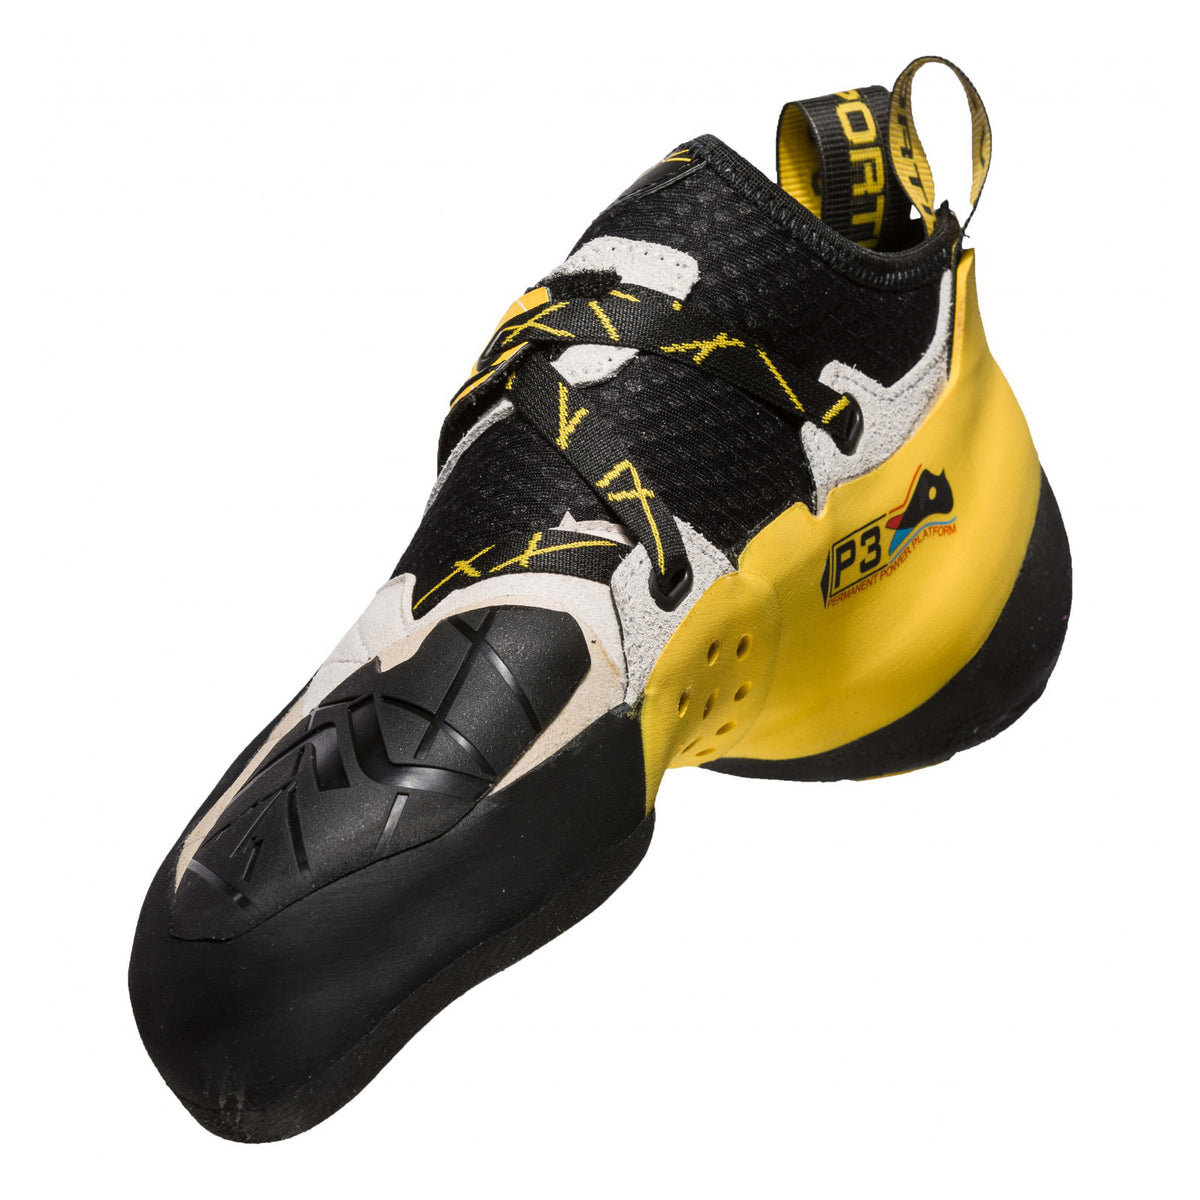 La Sportiva Solution climbing shoe, view from the inside showing the downturn